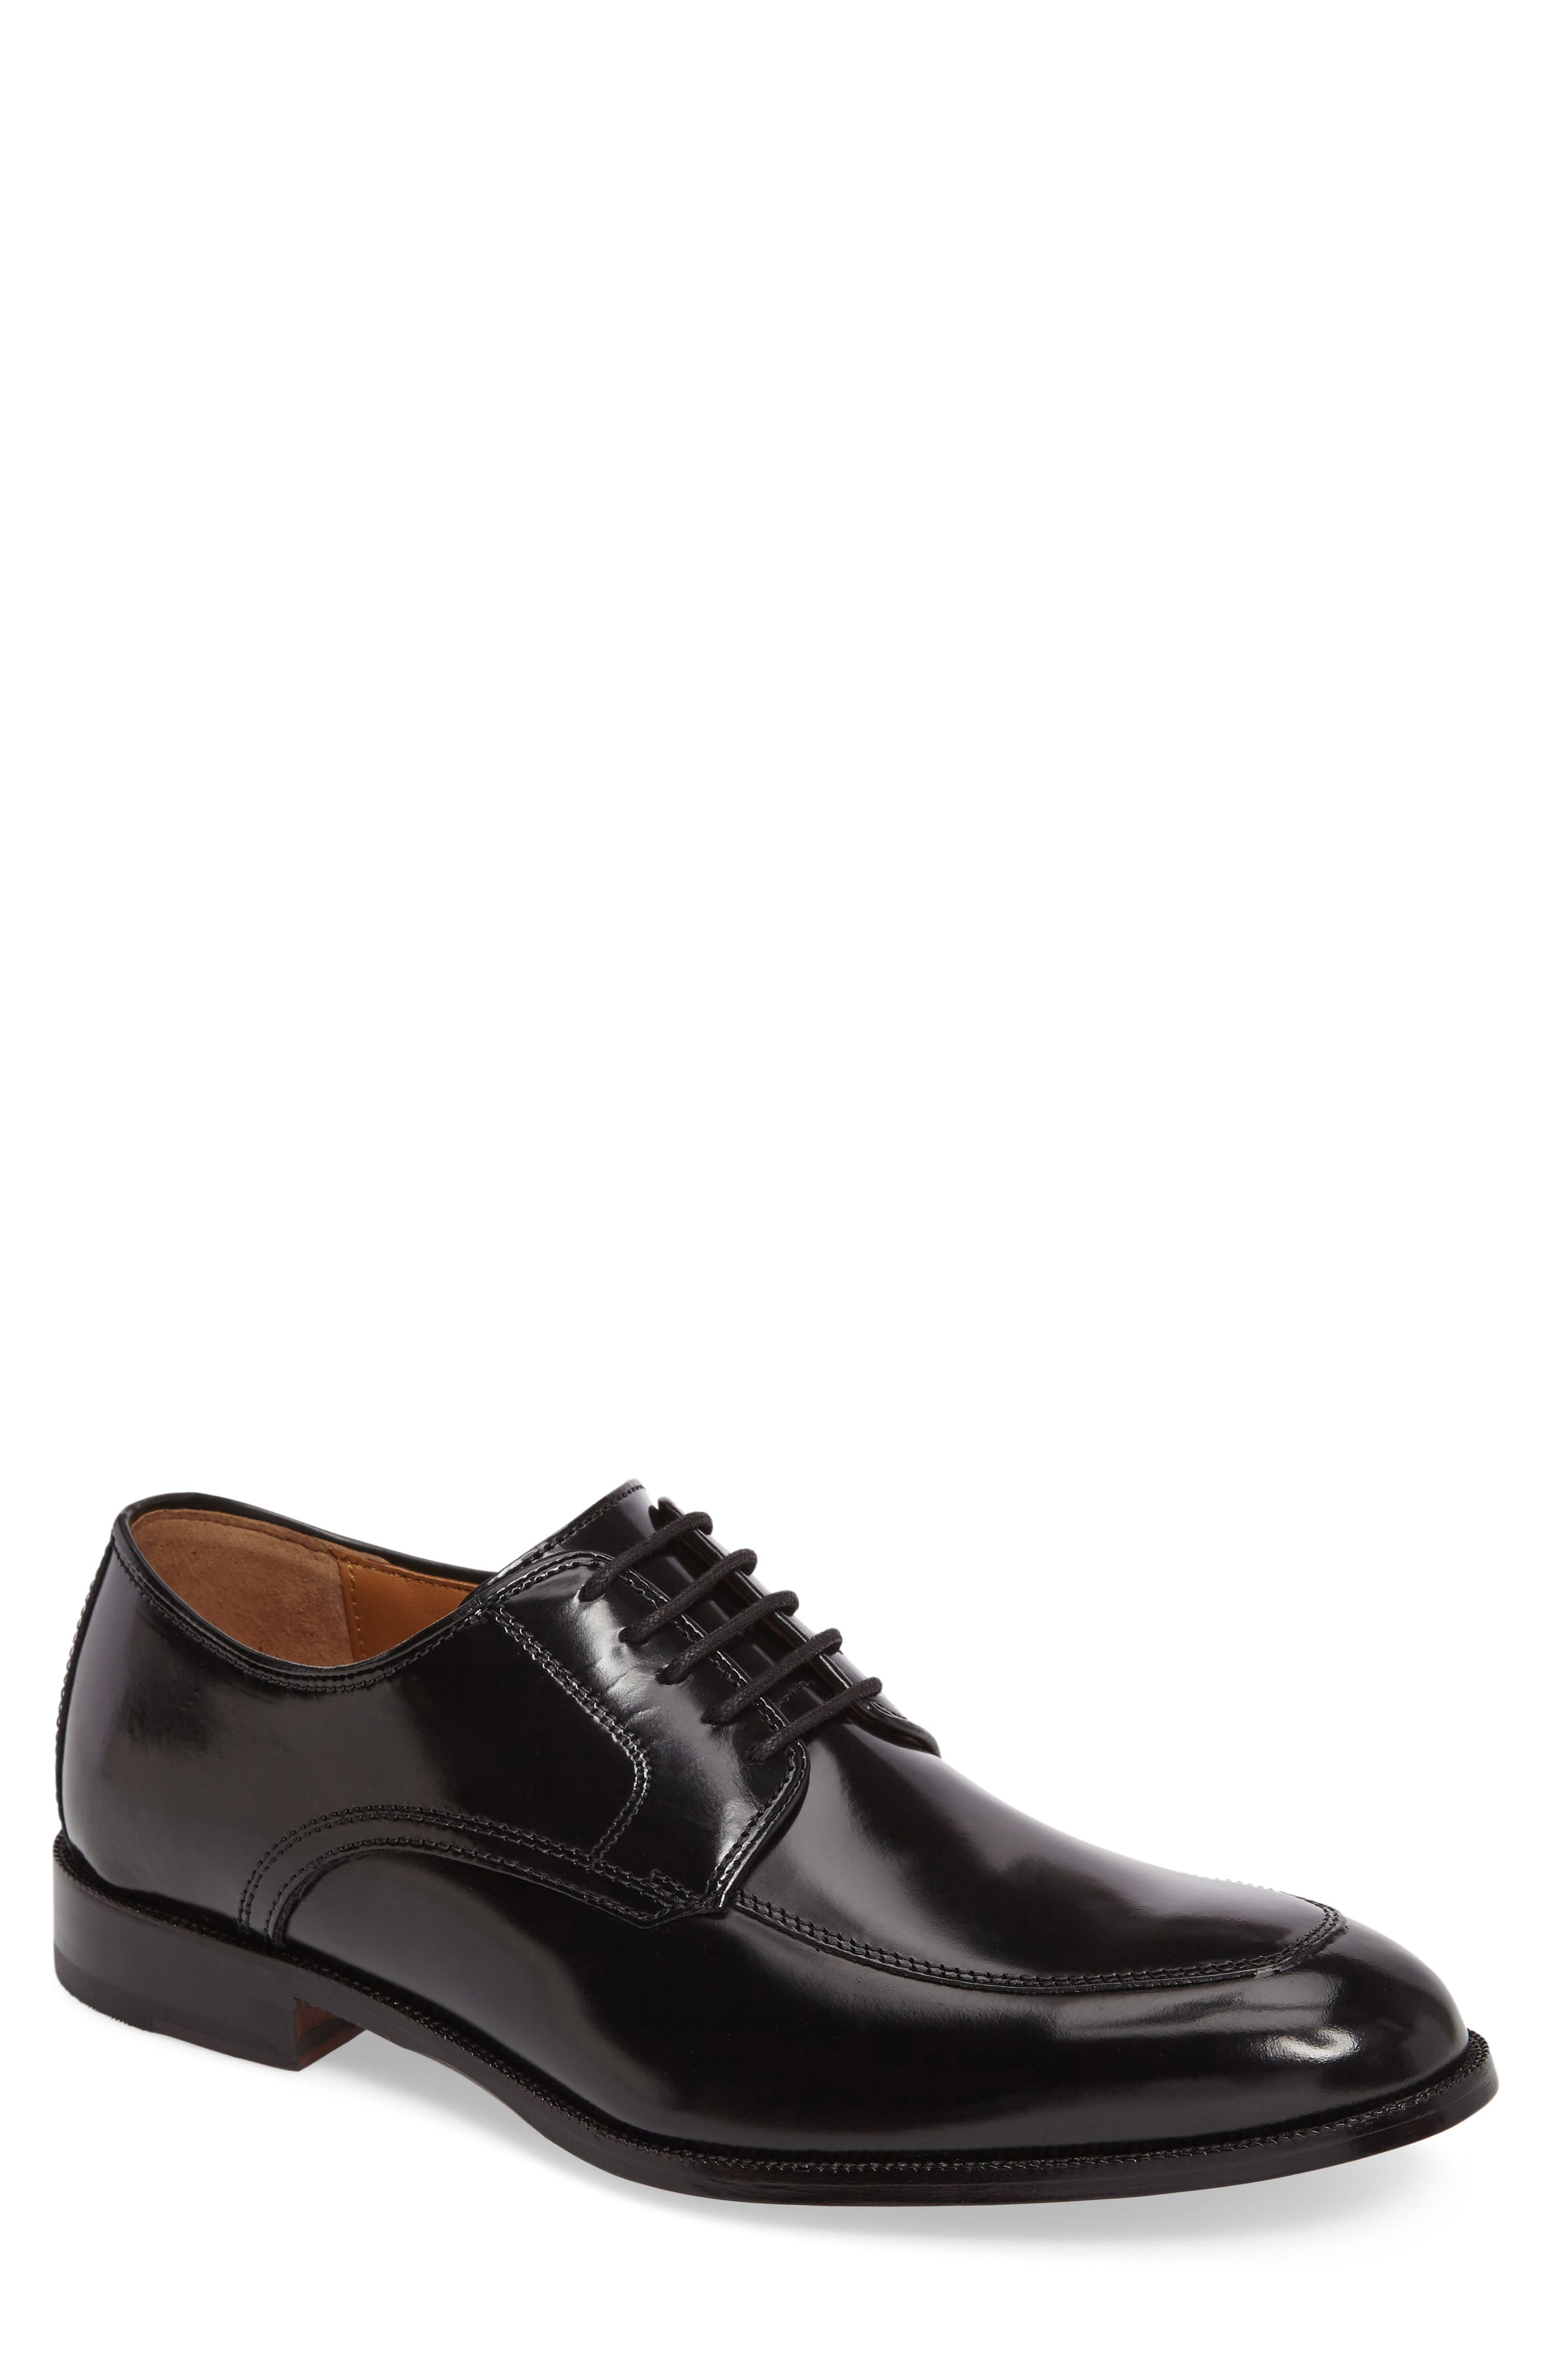 Bradford Apron-Toe Oxford,                         Main,                         color, BLACK LEATHER